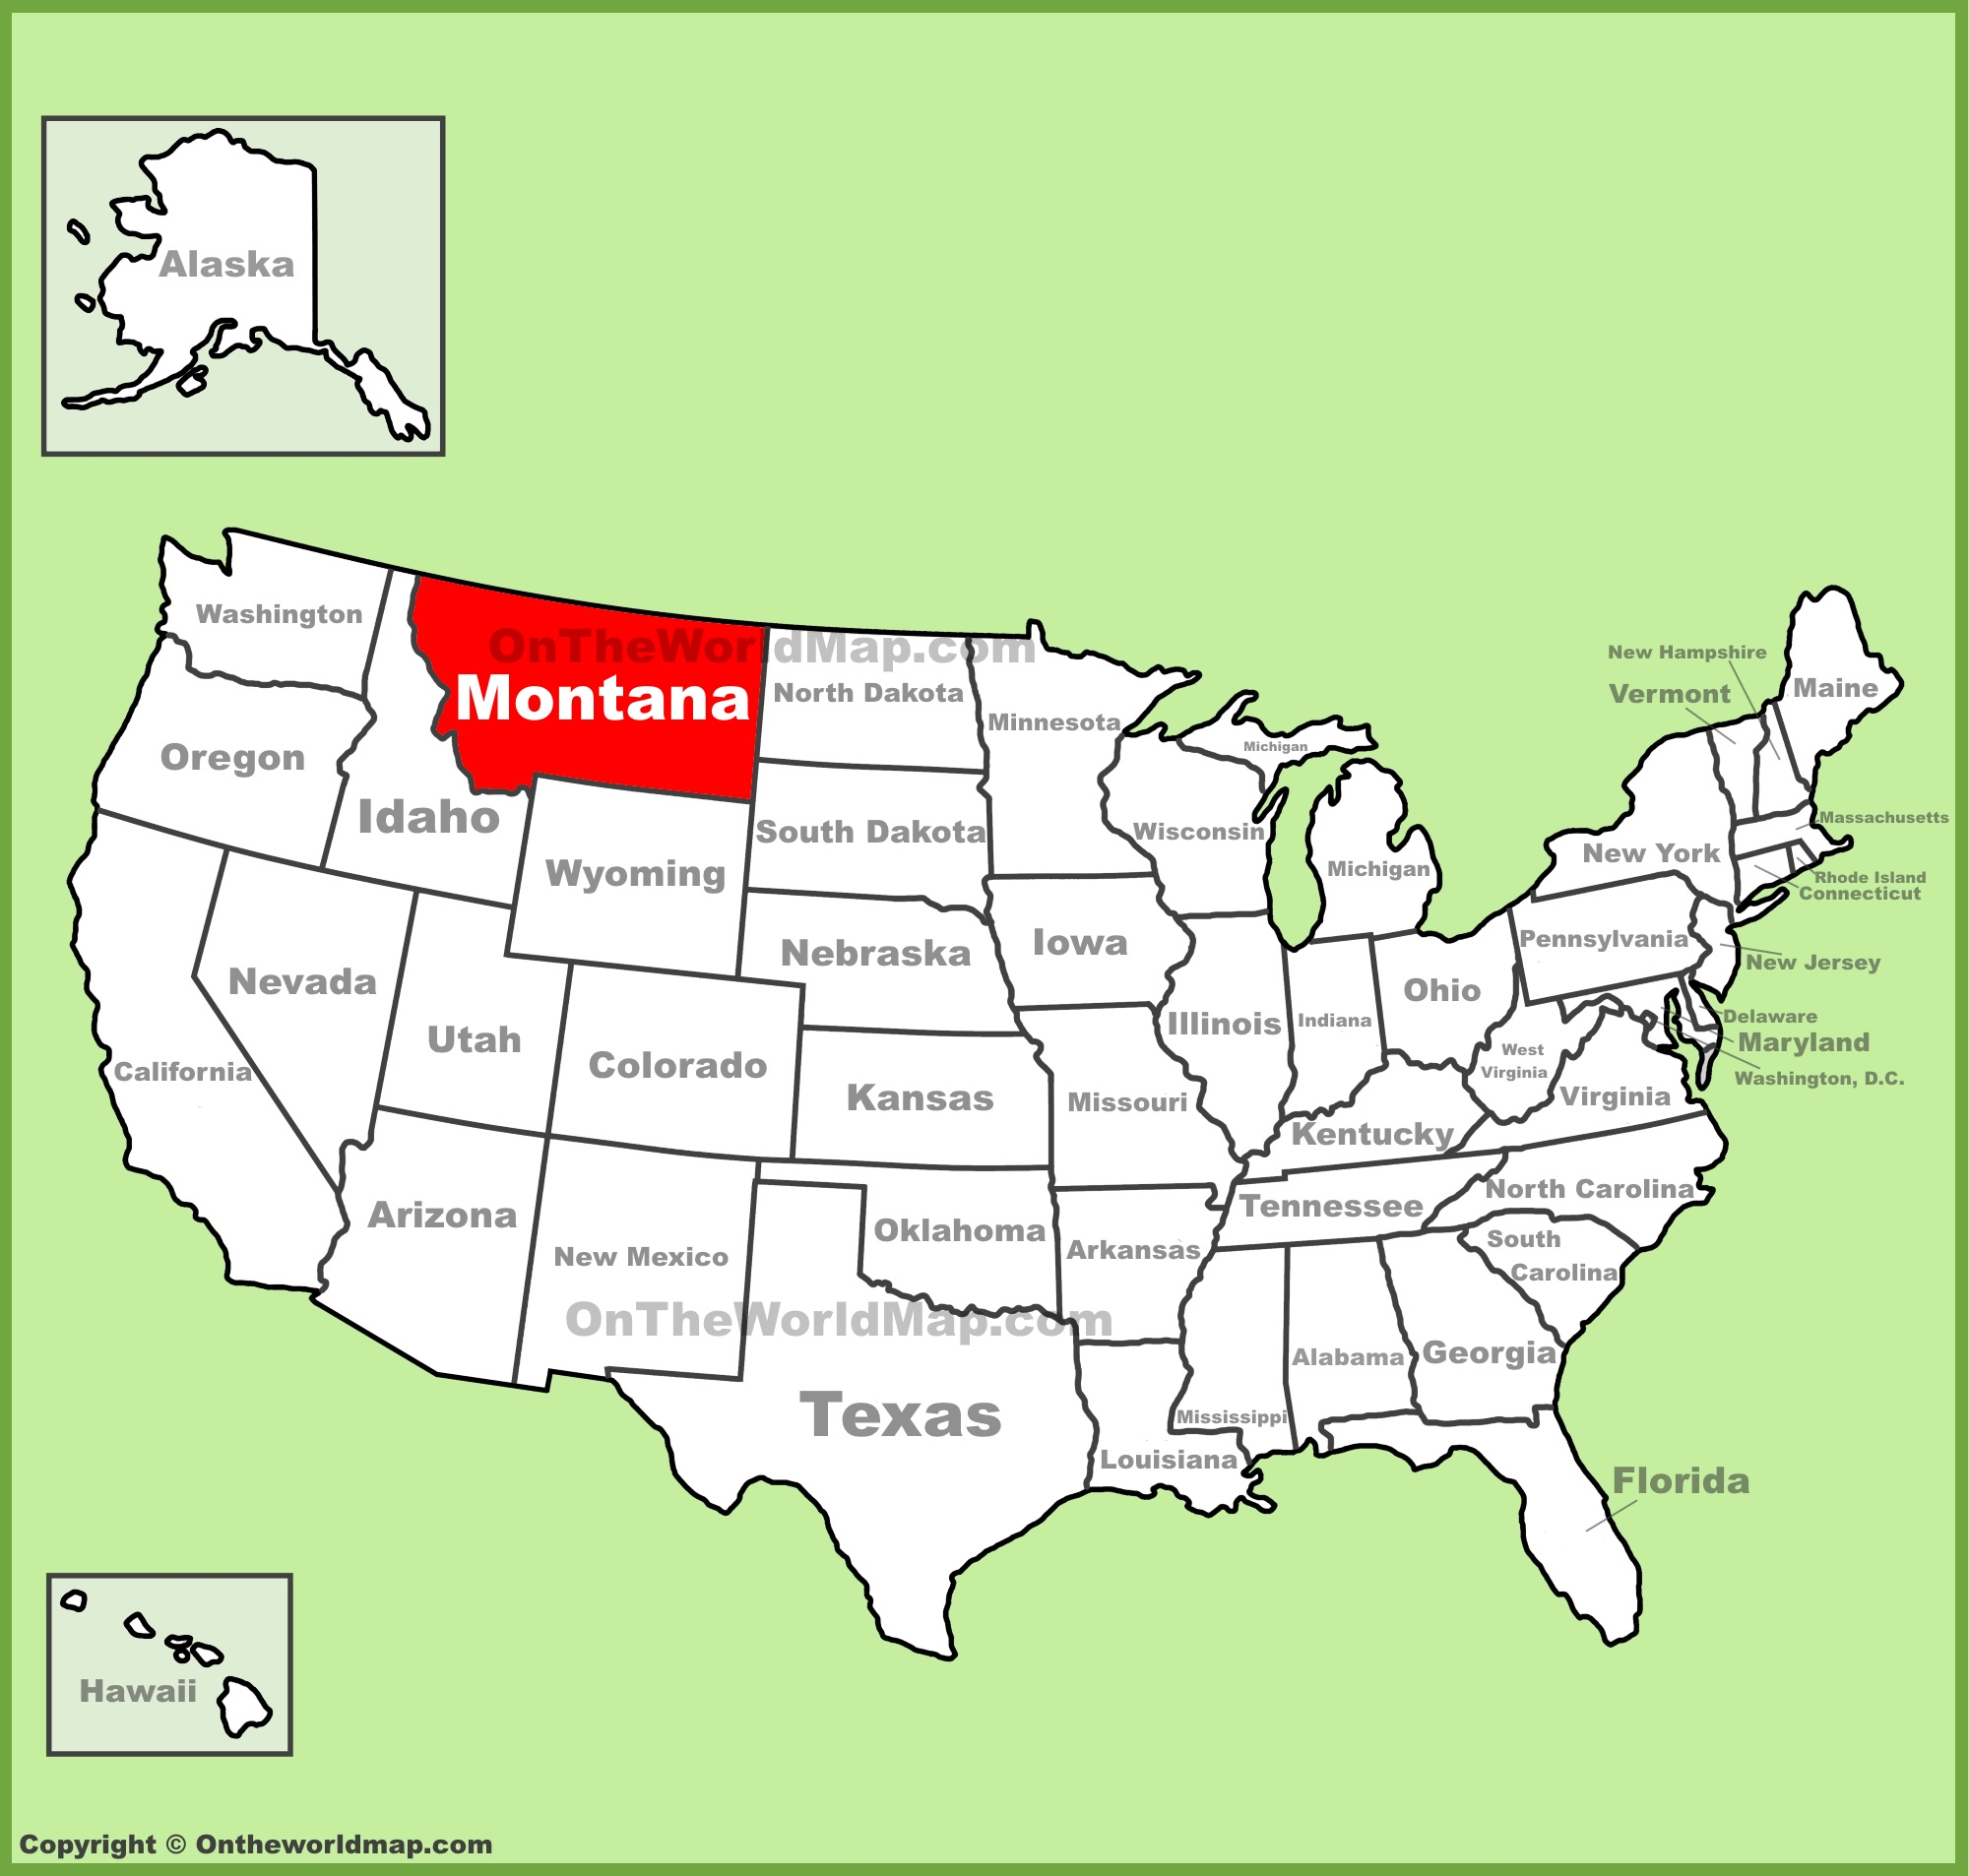 Montana On Us Map Montana location on the U.S. Map Montana On Us Map